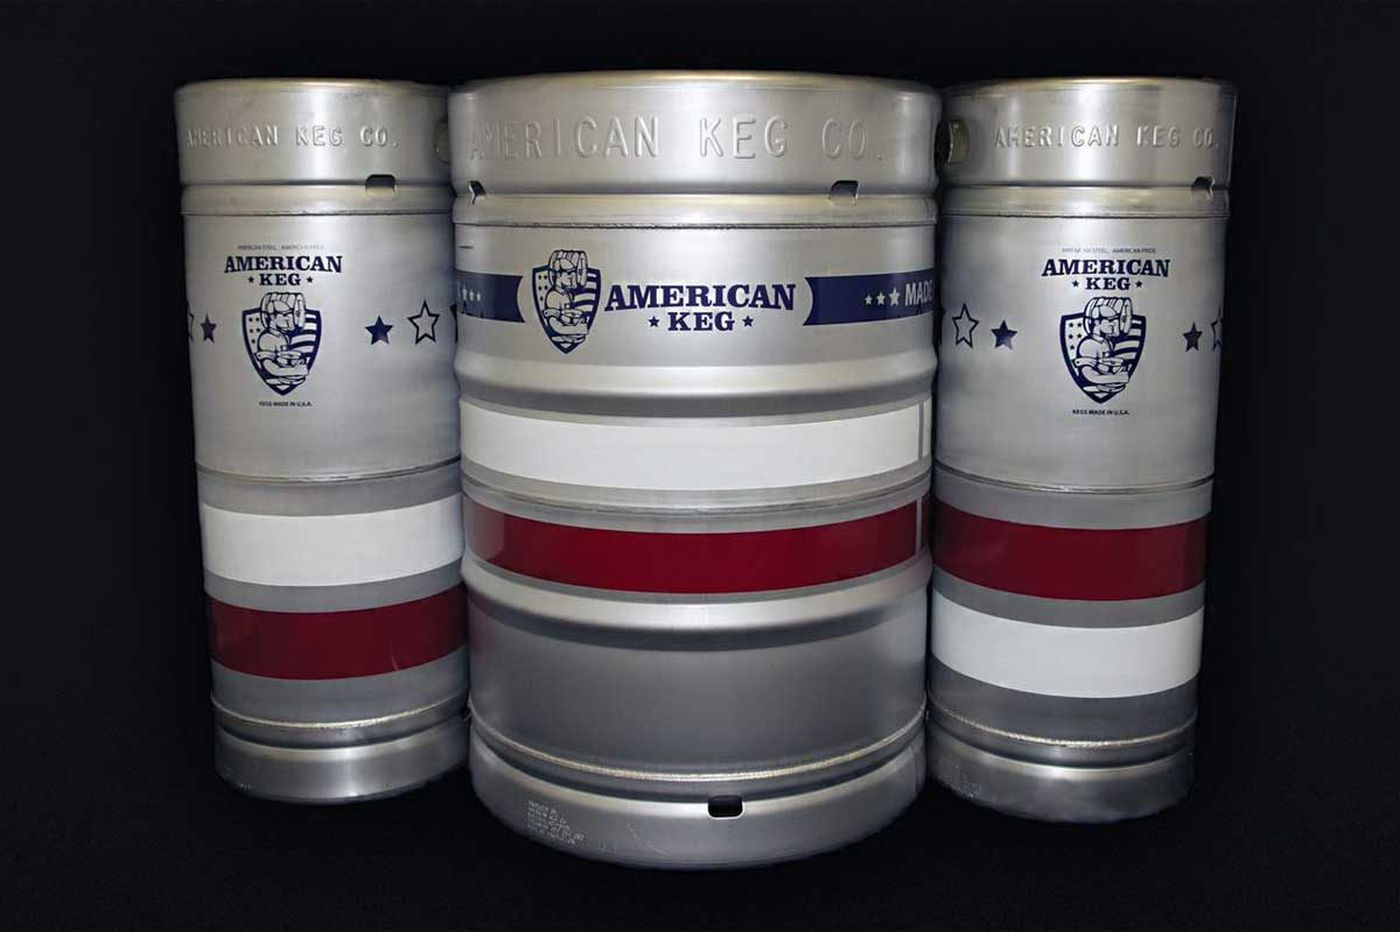 America's last keg maker, American Keg Co. of Pottstown, may get tapped out by new tariffs